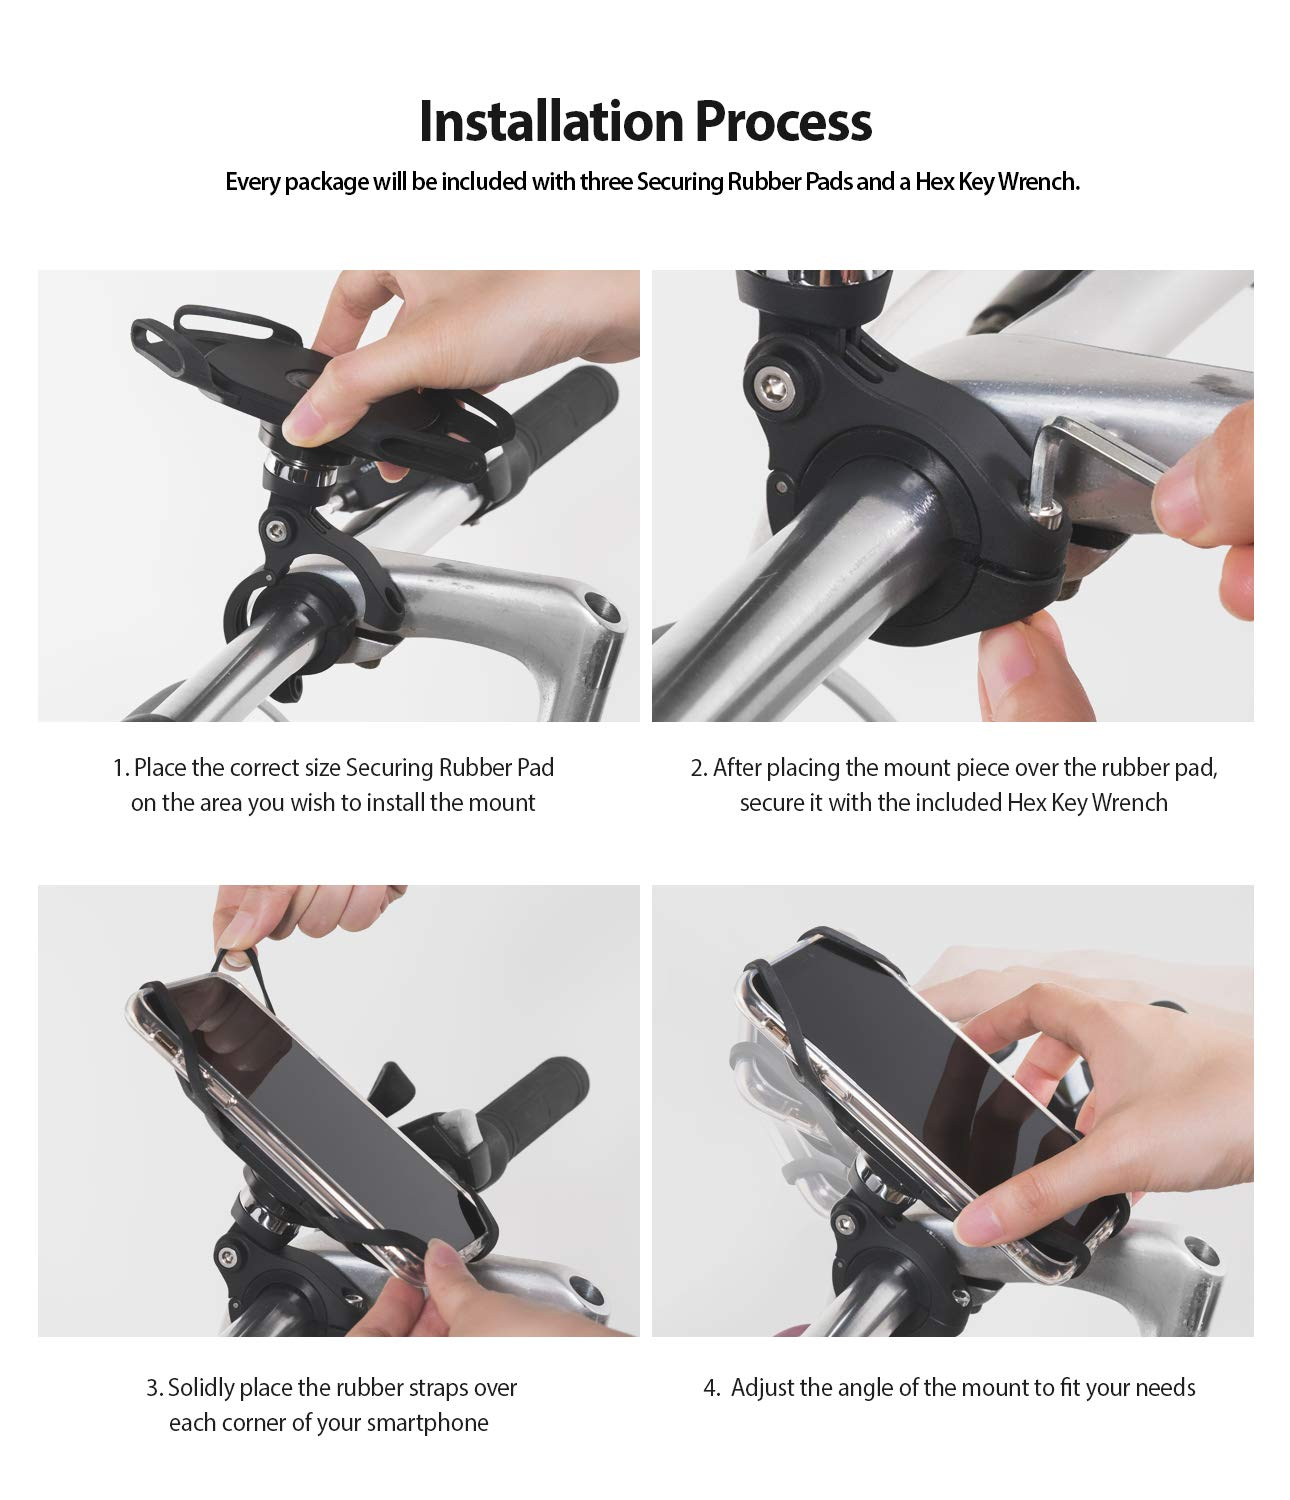 ringke spider grip bike mount with secure elastic bands - installation process